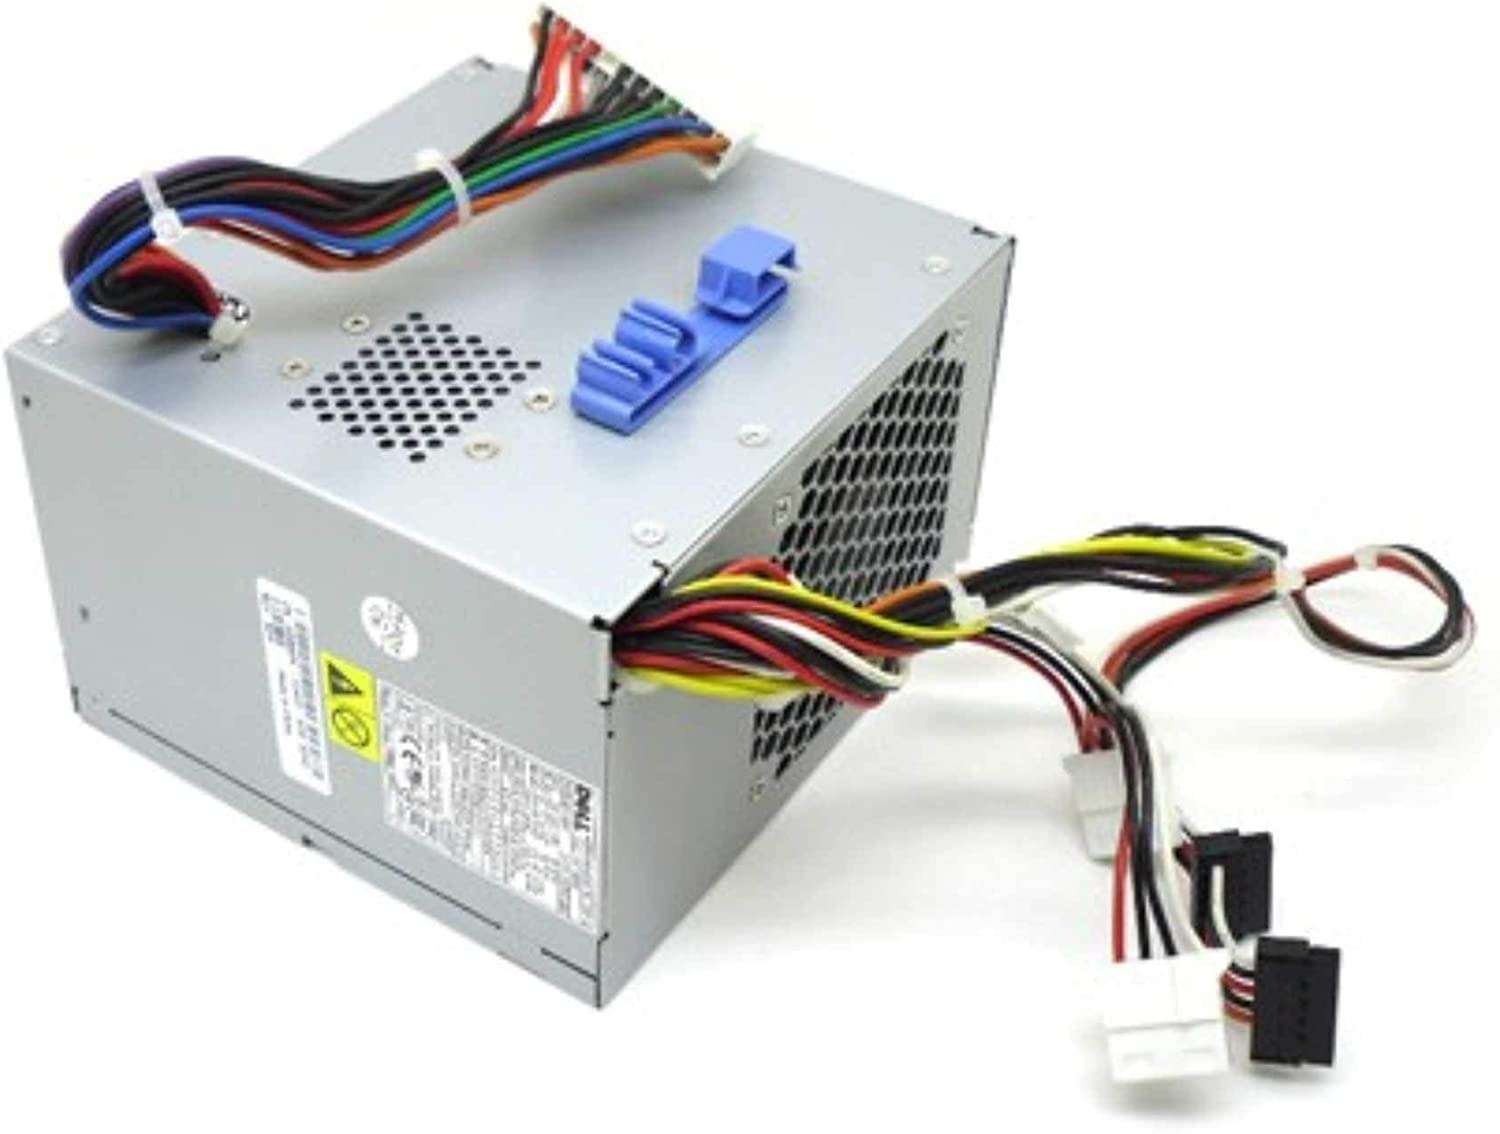 Dell Power Supply Model L305p-00 Dell P/n M88055 Dell Gx620 (Certified Refurbished)